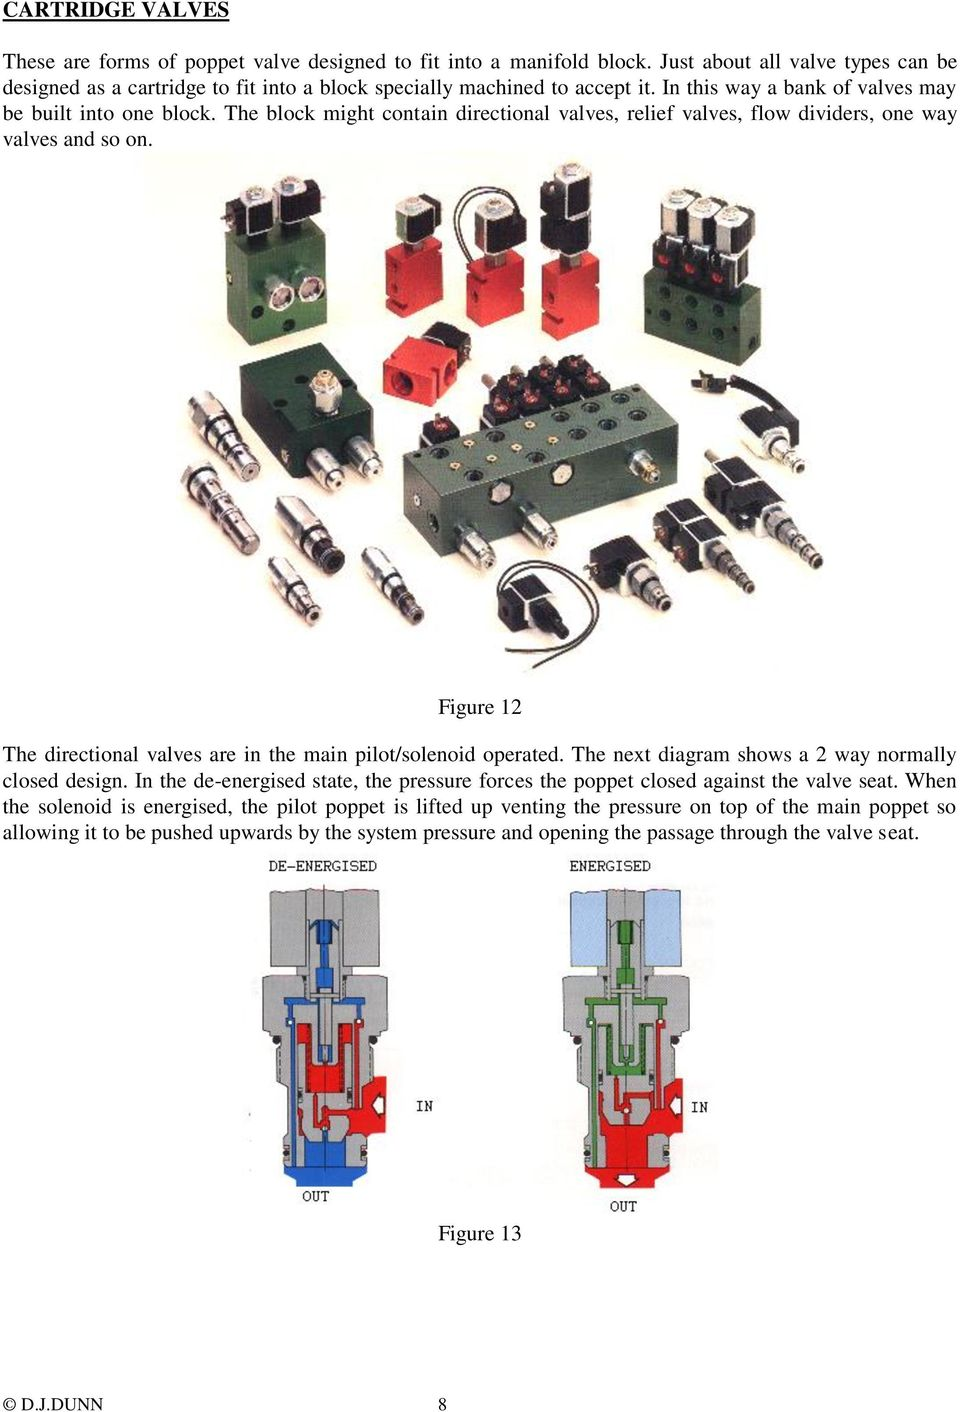 Figure 12 The directional valves are in the main pilot/solenoid operated. The next diagram shows a 2 way normally closed design.